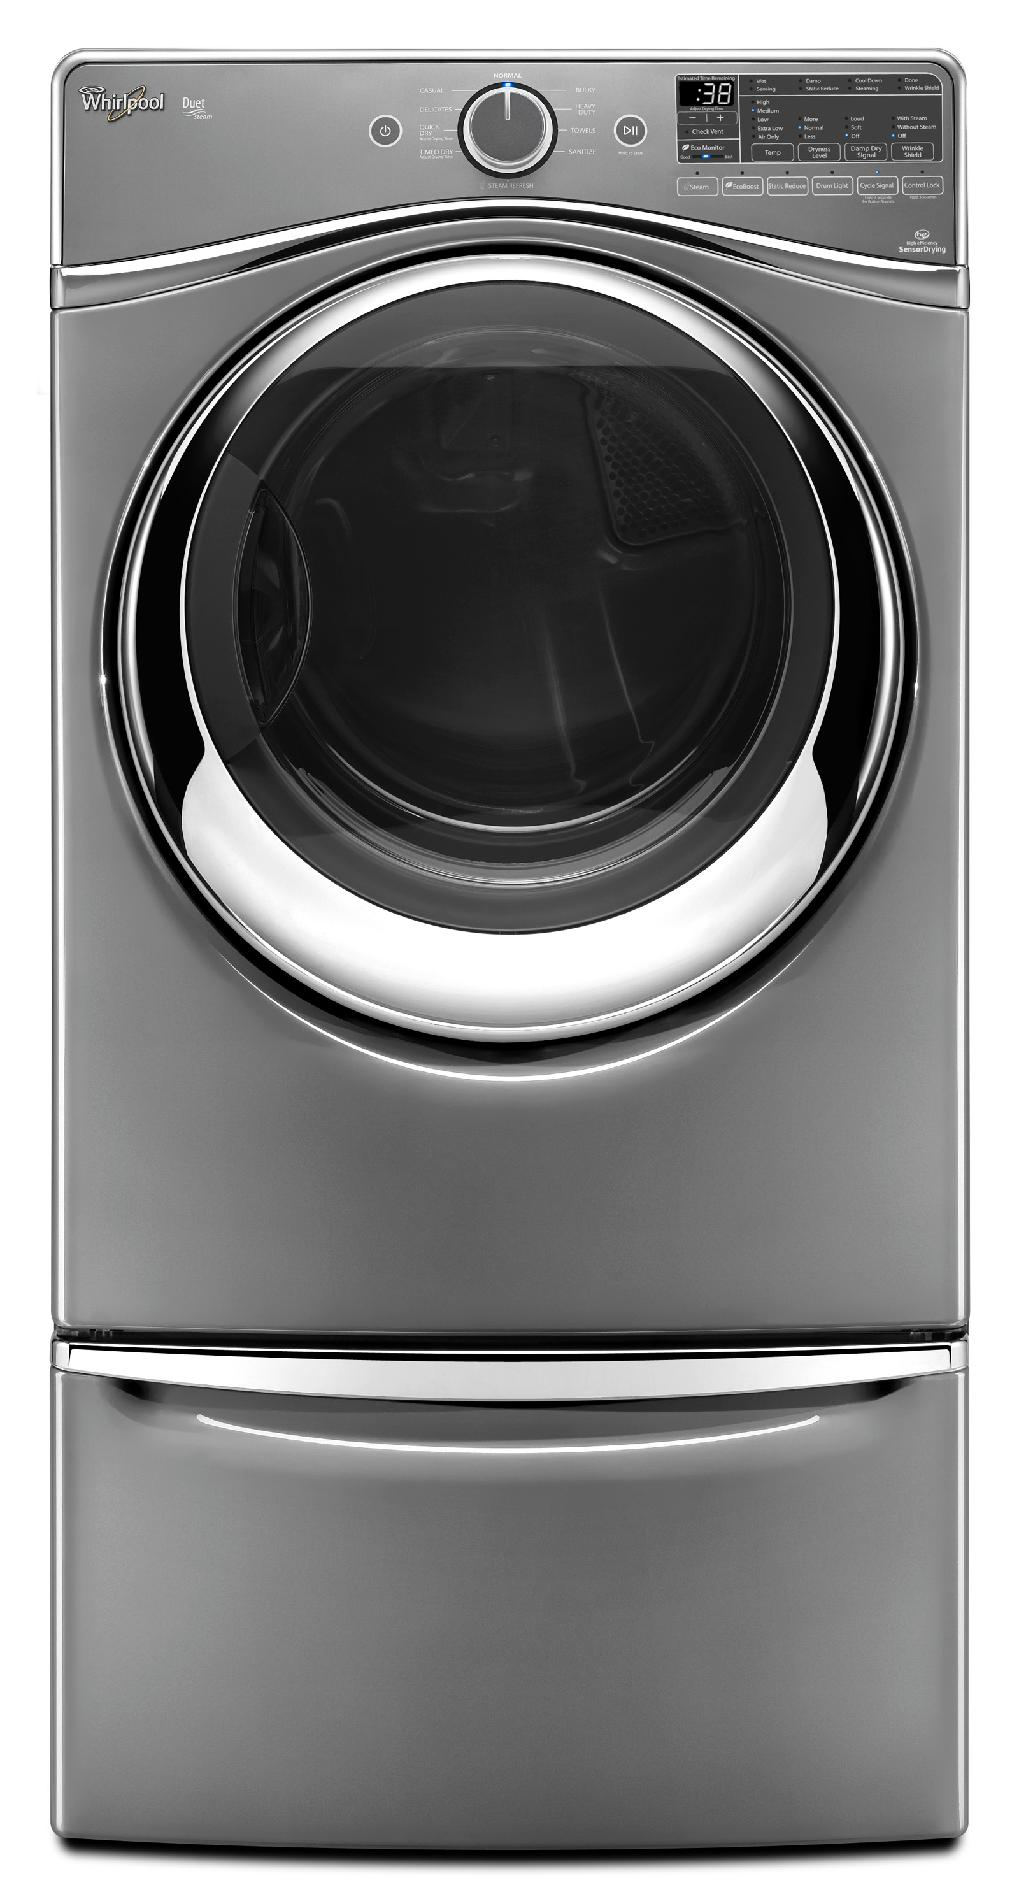 Whirlpool WGD97HEDC 7.4 cu. ft. Duet® Gas Dryer w/ SilentSteel™ Drum - Chrome Shadow